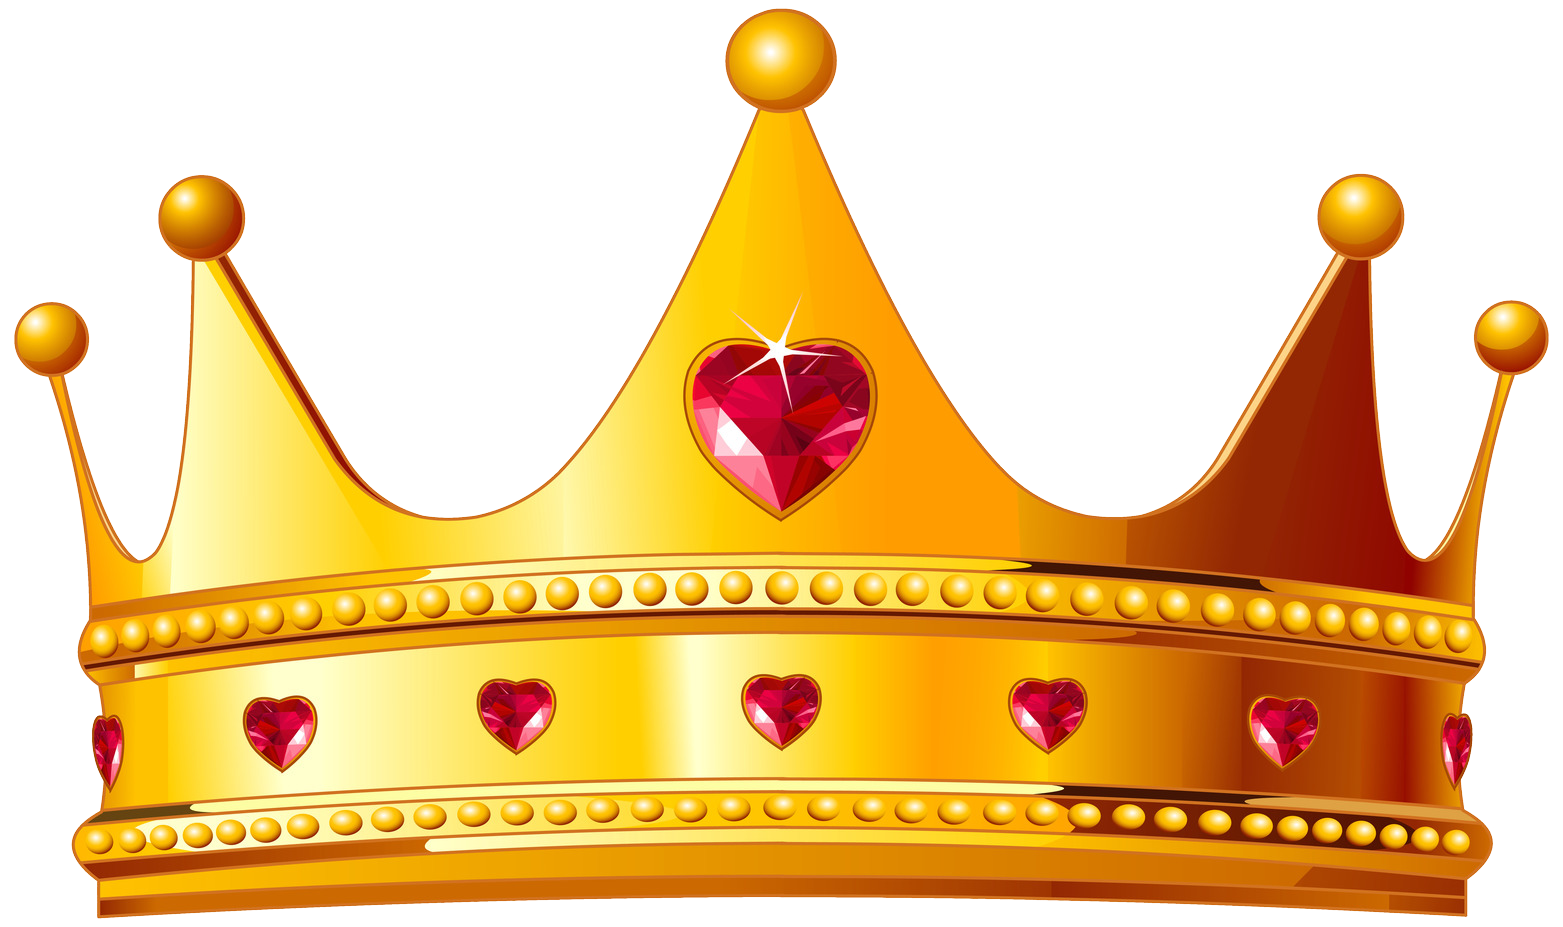 Clipart crown transparent royalty free library Full Hd Crown Png Transparent Background royalty free library